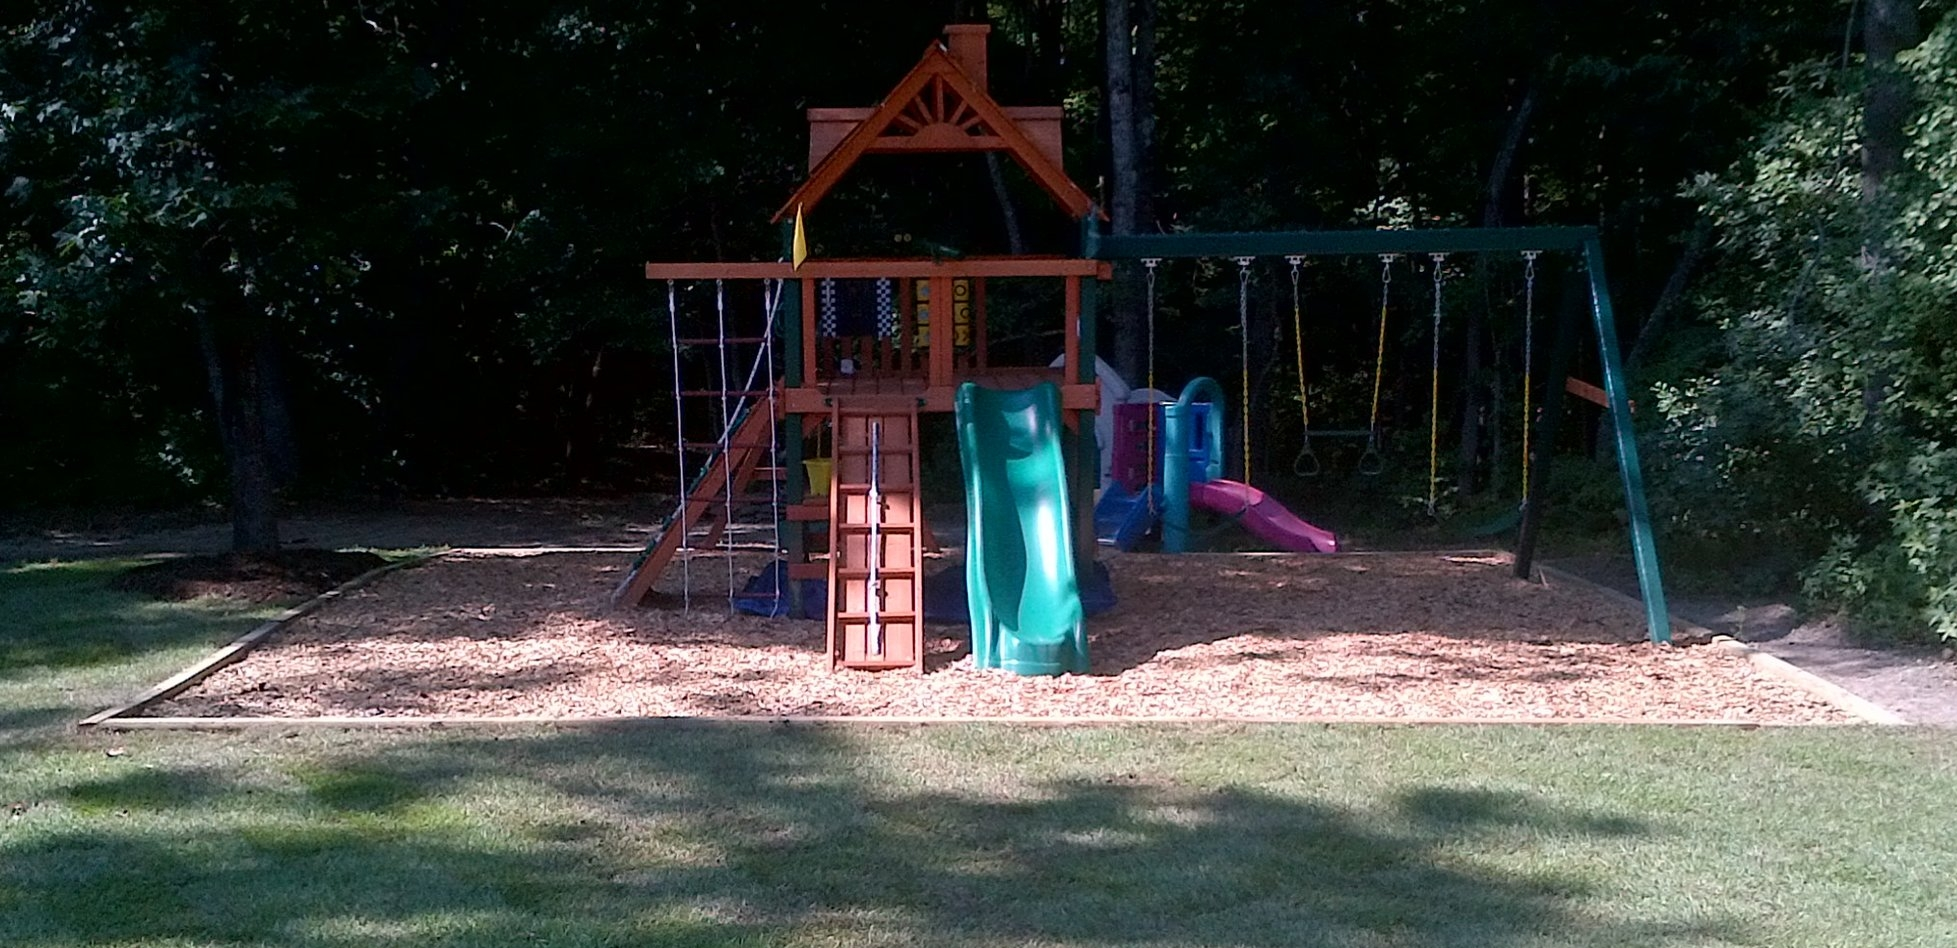 TLG-Playground-After.jpg